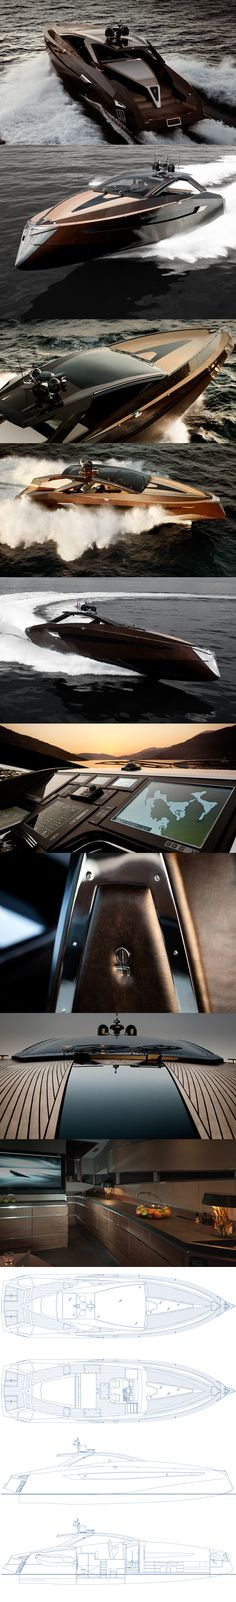 Art of Kinetik Hedonist Yacht, Luxury http://www.thegentlemansjournal.com/gear